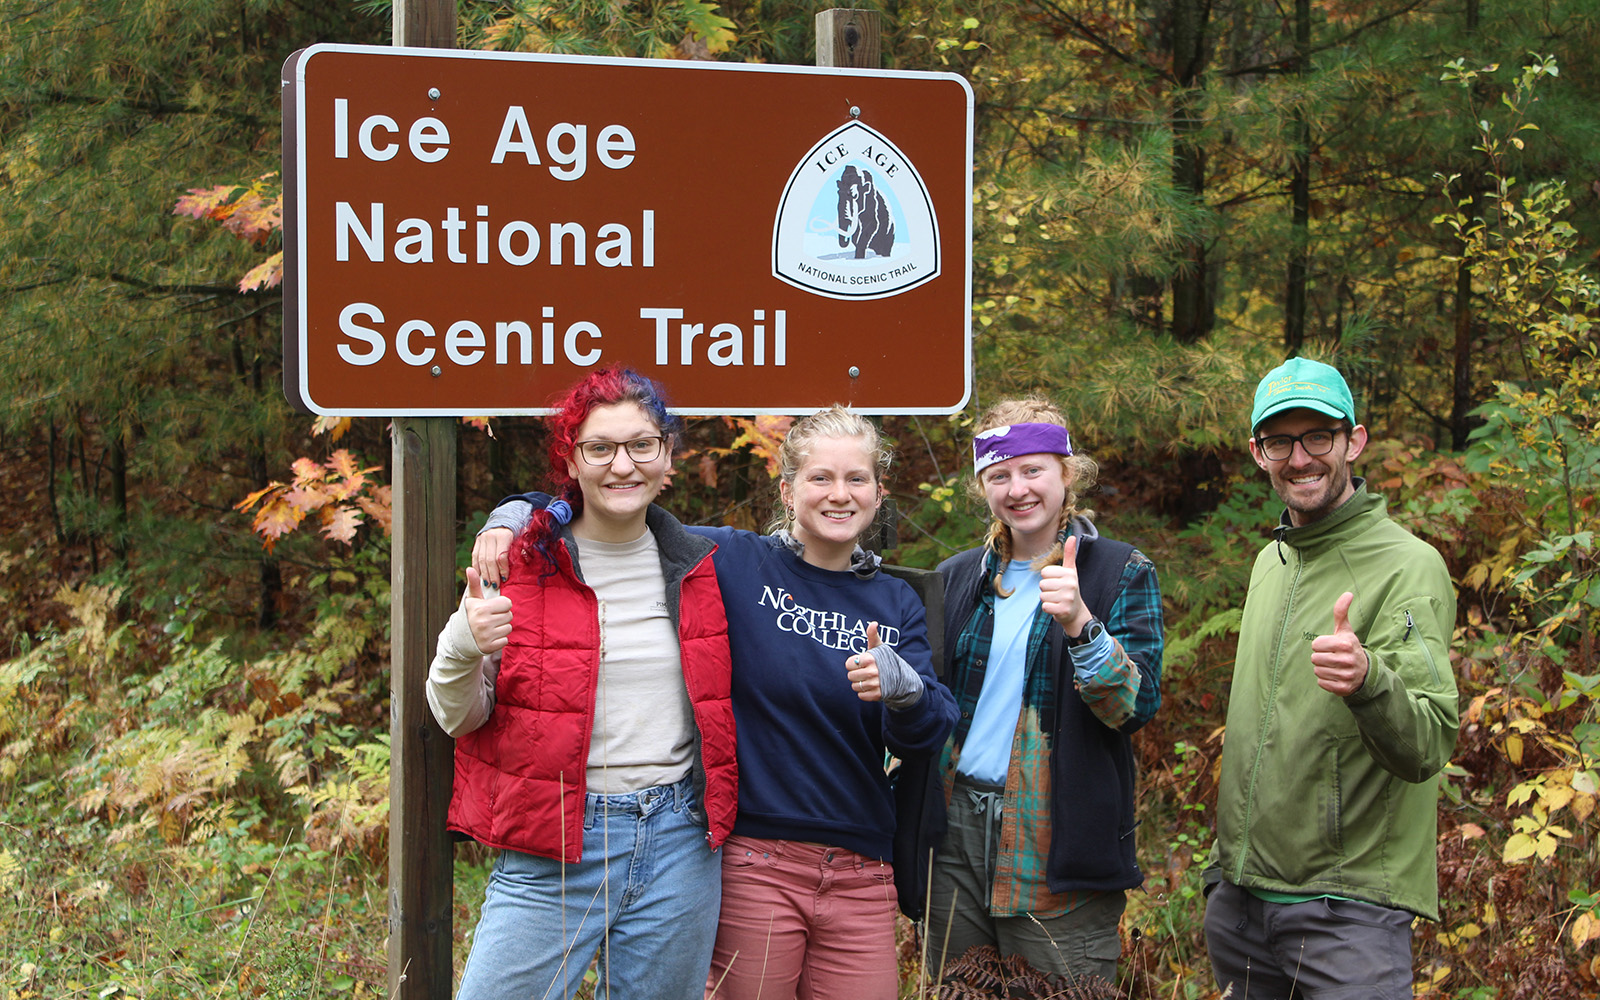 Northland College Students and Professor Dave Ullman pose for a portrait by the Ice Age National Scenic Trail sign.